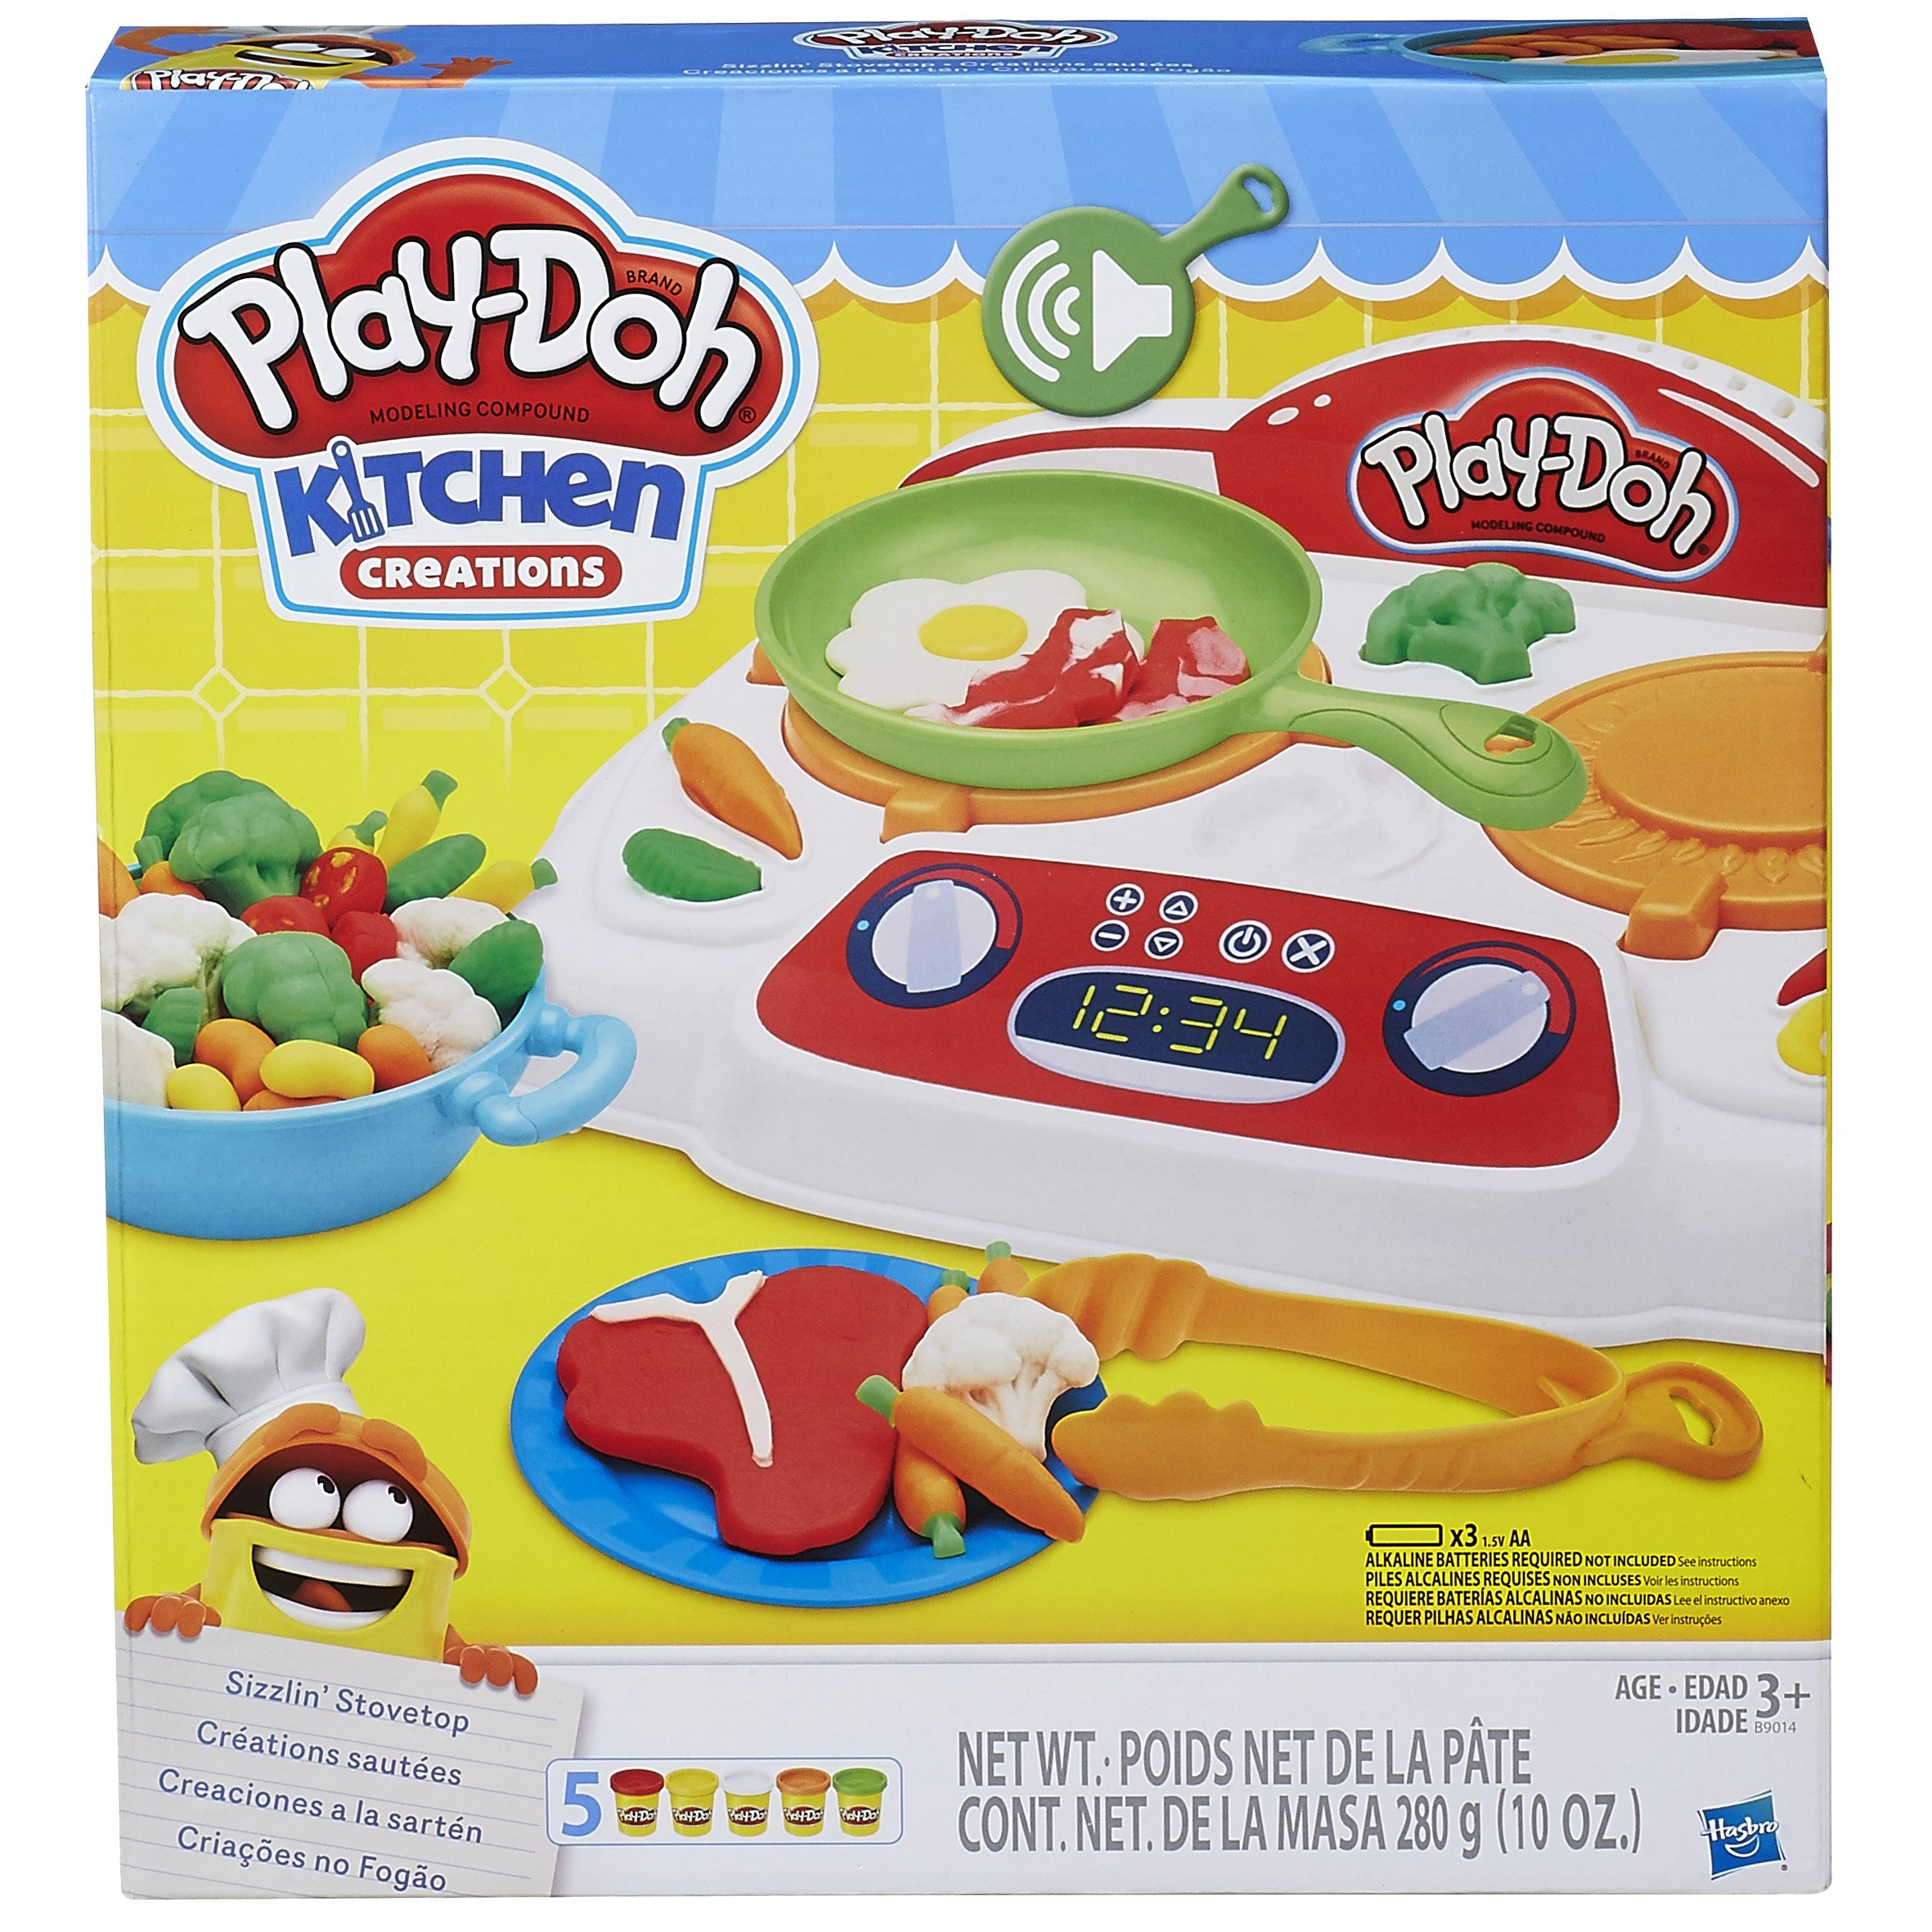 Play-Doh - B9014 - Kitchen Creations Sizzling Stovetop by Play-Doh (Image #9)